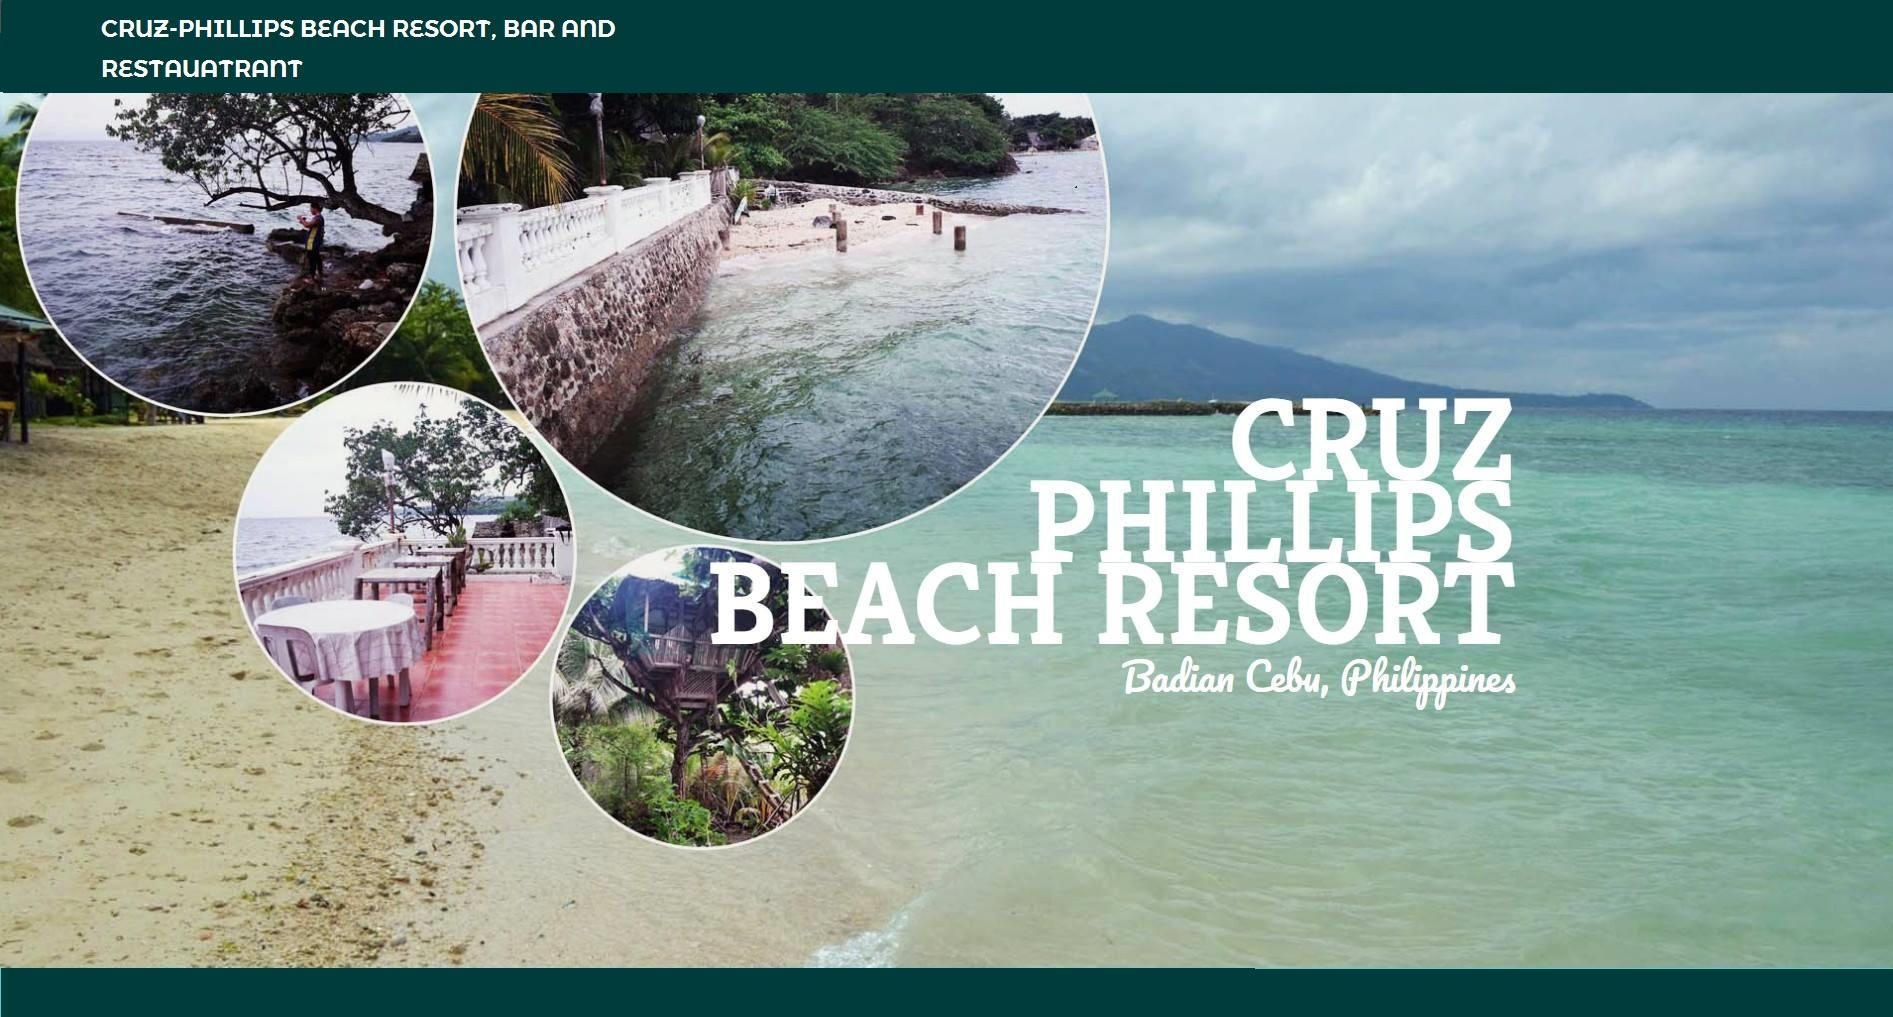 Cruz-Phillips Beach Resort, Restaurant and Lodging - Hotels Information/Map/Reviews/Reservation